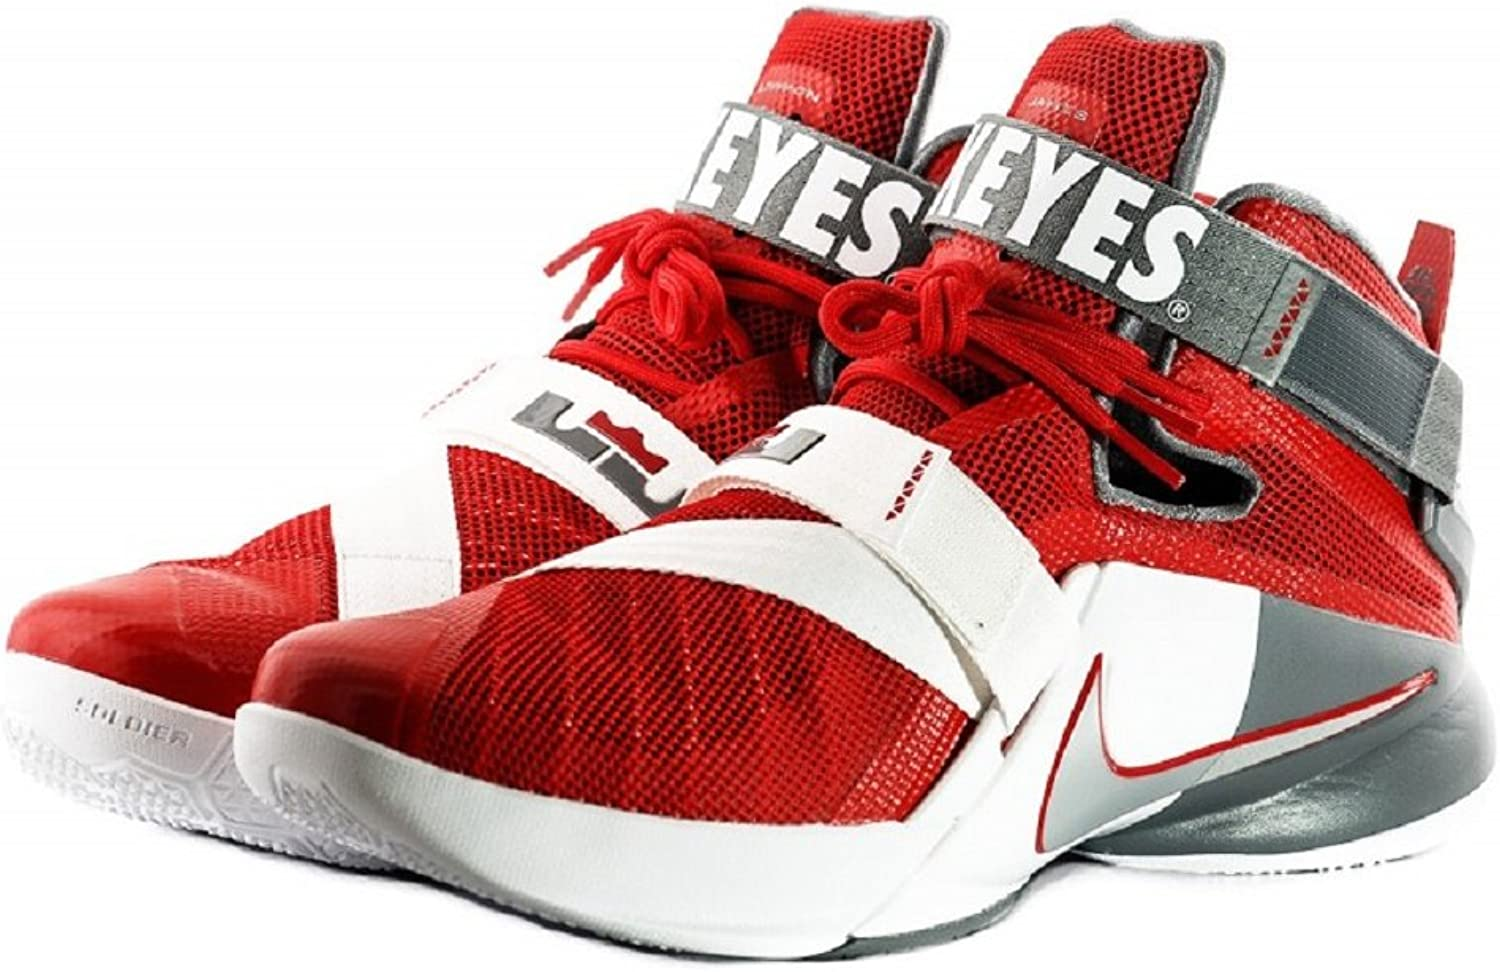 Nike Lebron Zoom Soldier IX 9 Premium Ohio State Basketball shoes